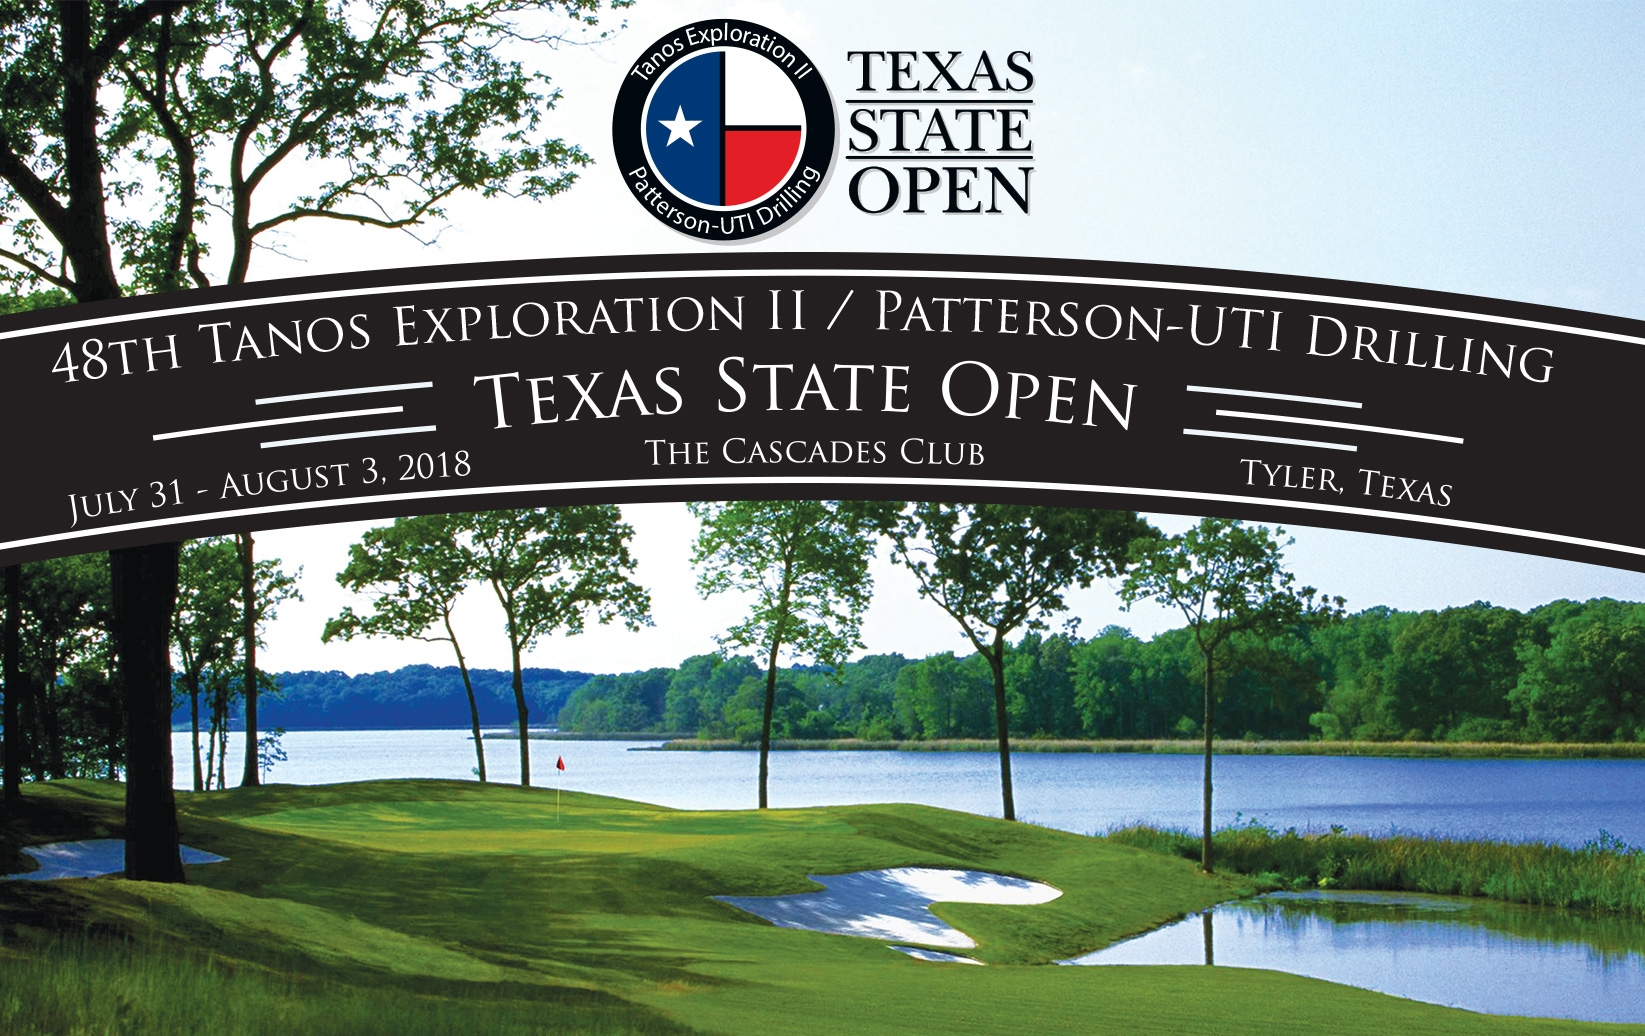 Tanos Exploration / Patterson-UTI Drilling Texas State Open Second Chance Qualifying Entry Available